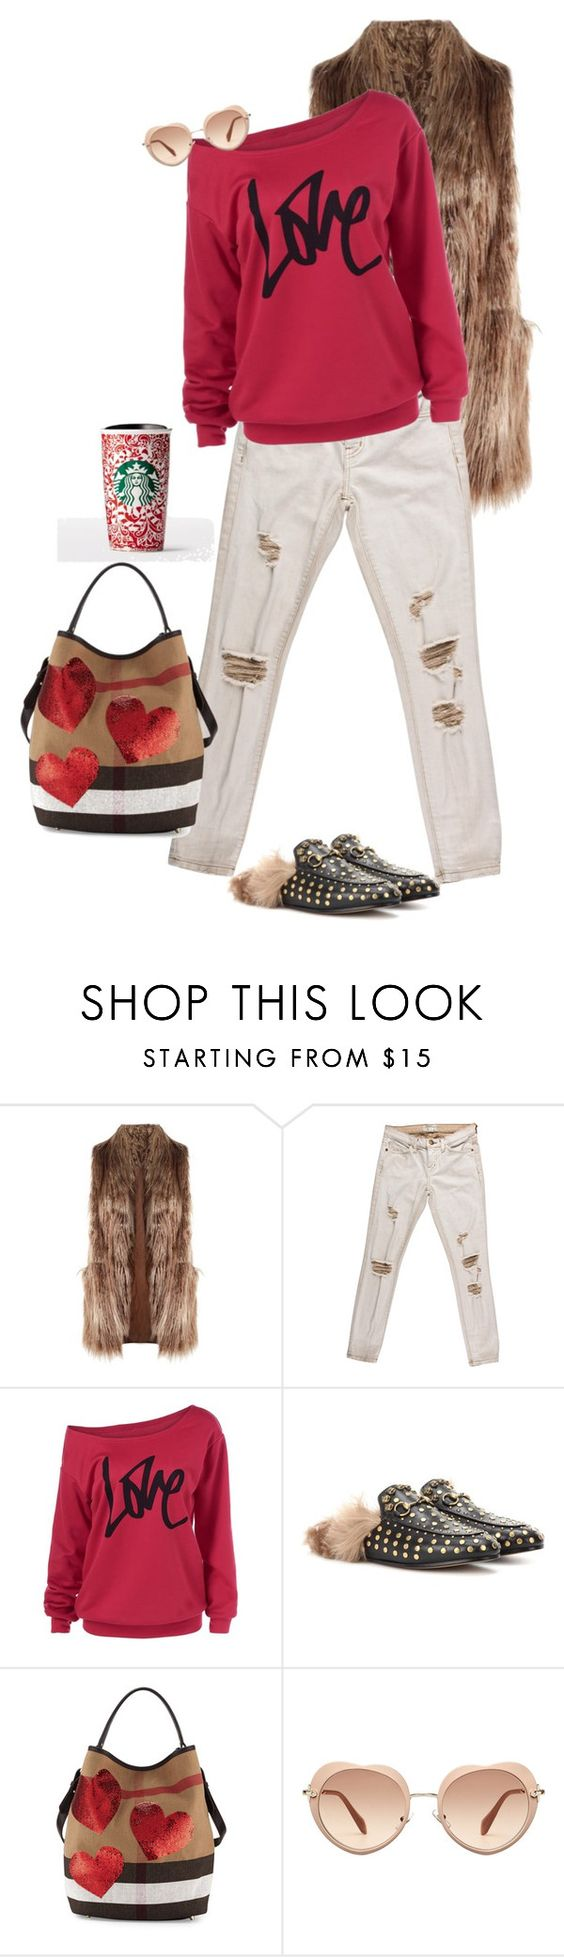 """""""Unbenannt #747"""" by lila77 ❤ liked on Polyvore featuring Related, Current/Elliott, Gucci, Burberry and Miu Miu"""